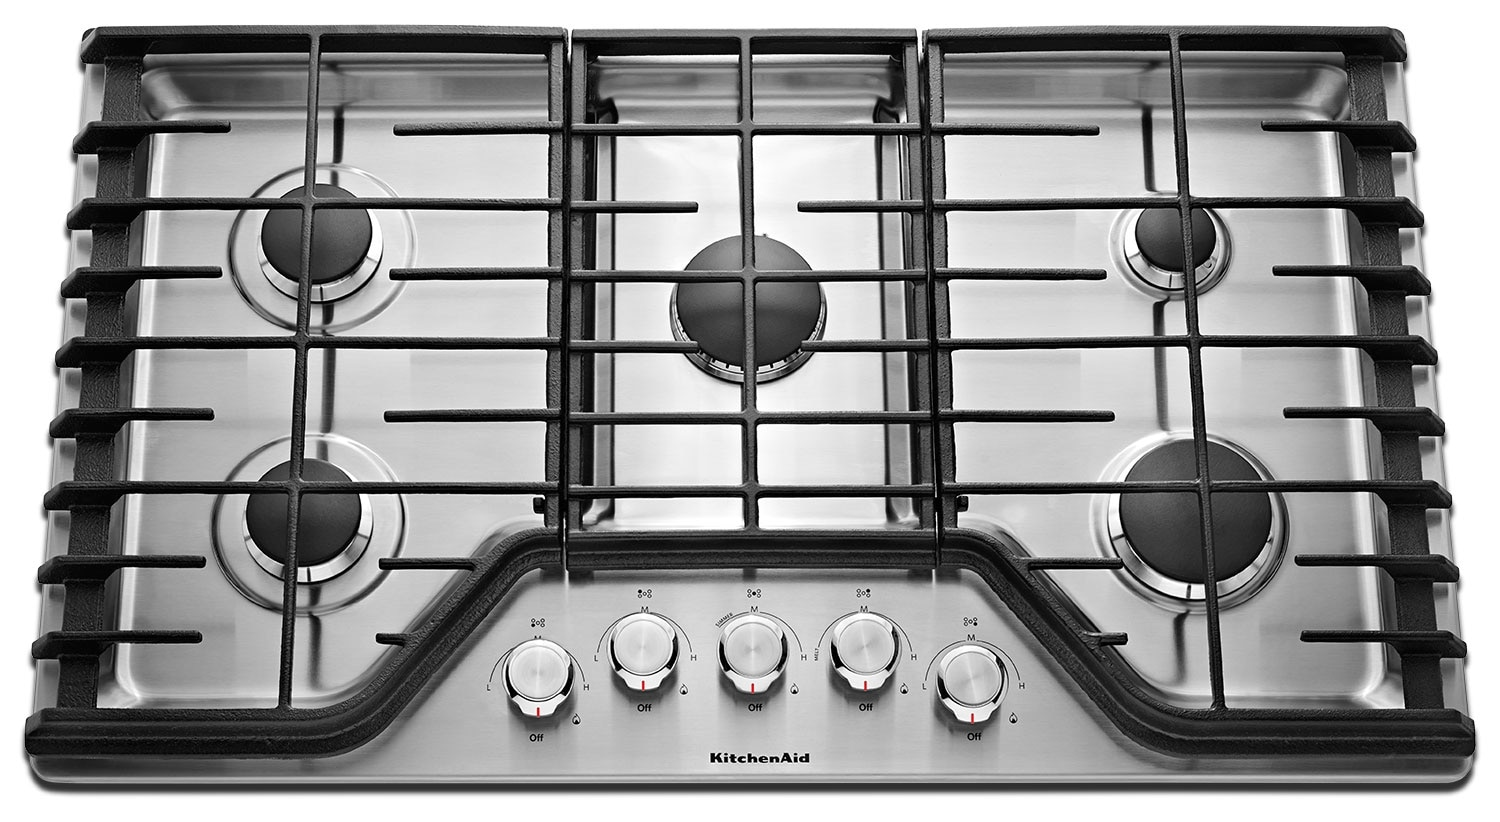 Cooking Products - KitchenAid Gas Cooktop KCGS350ESS